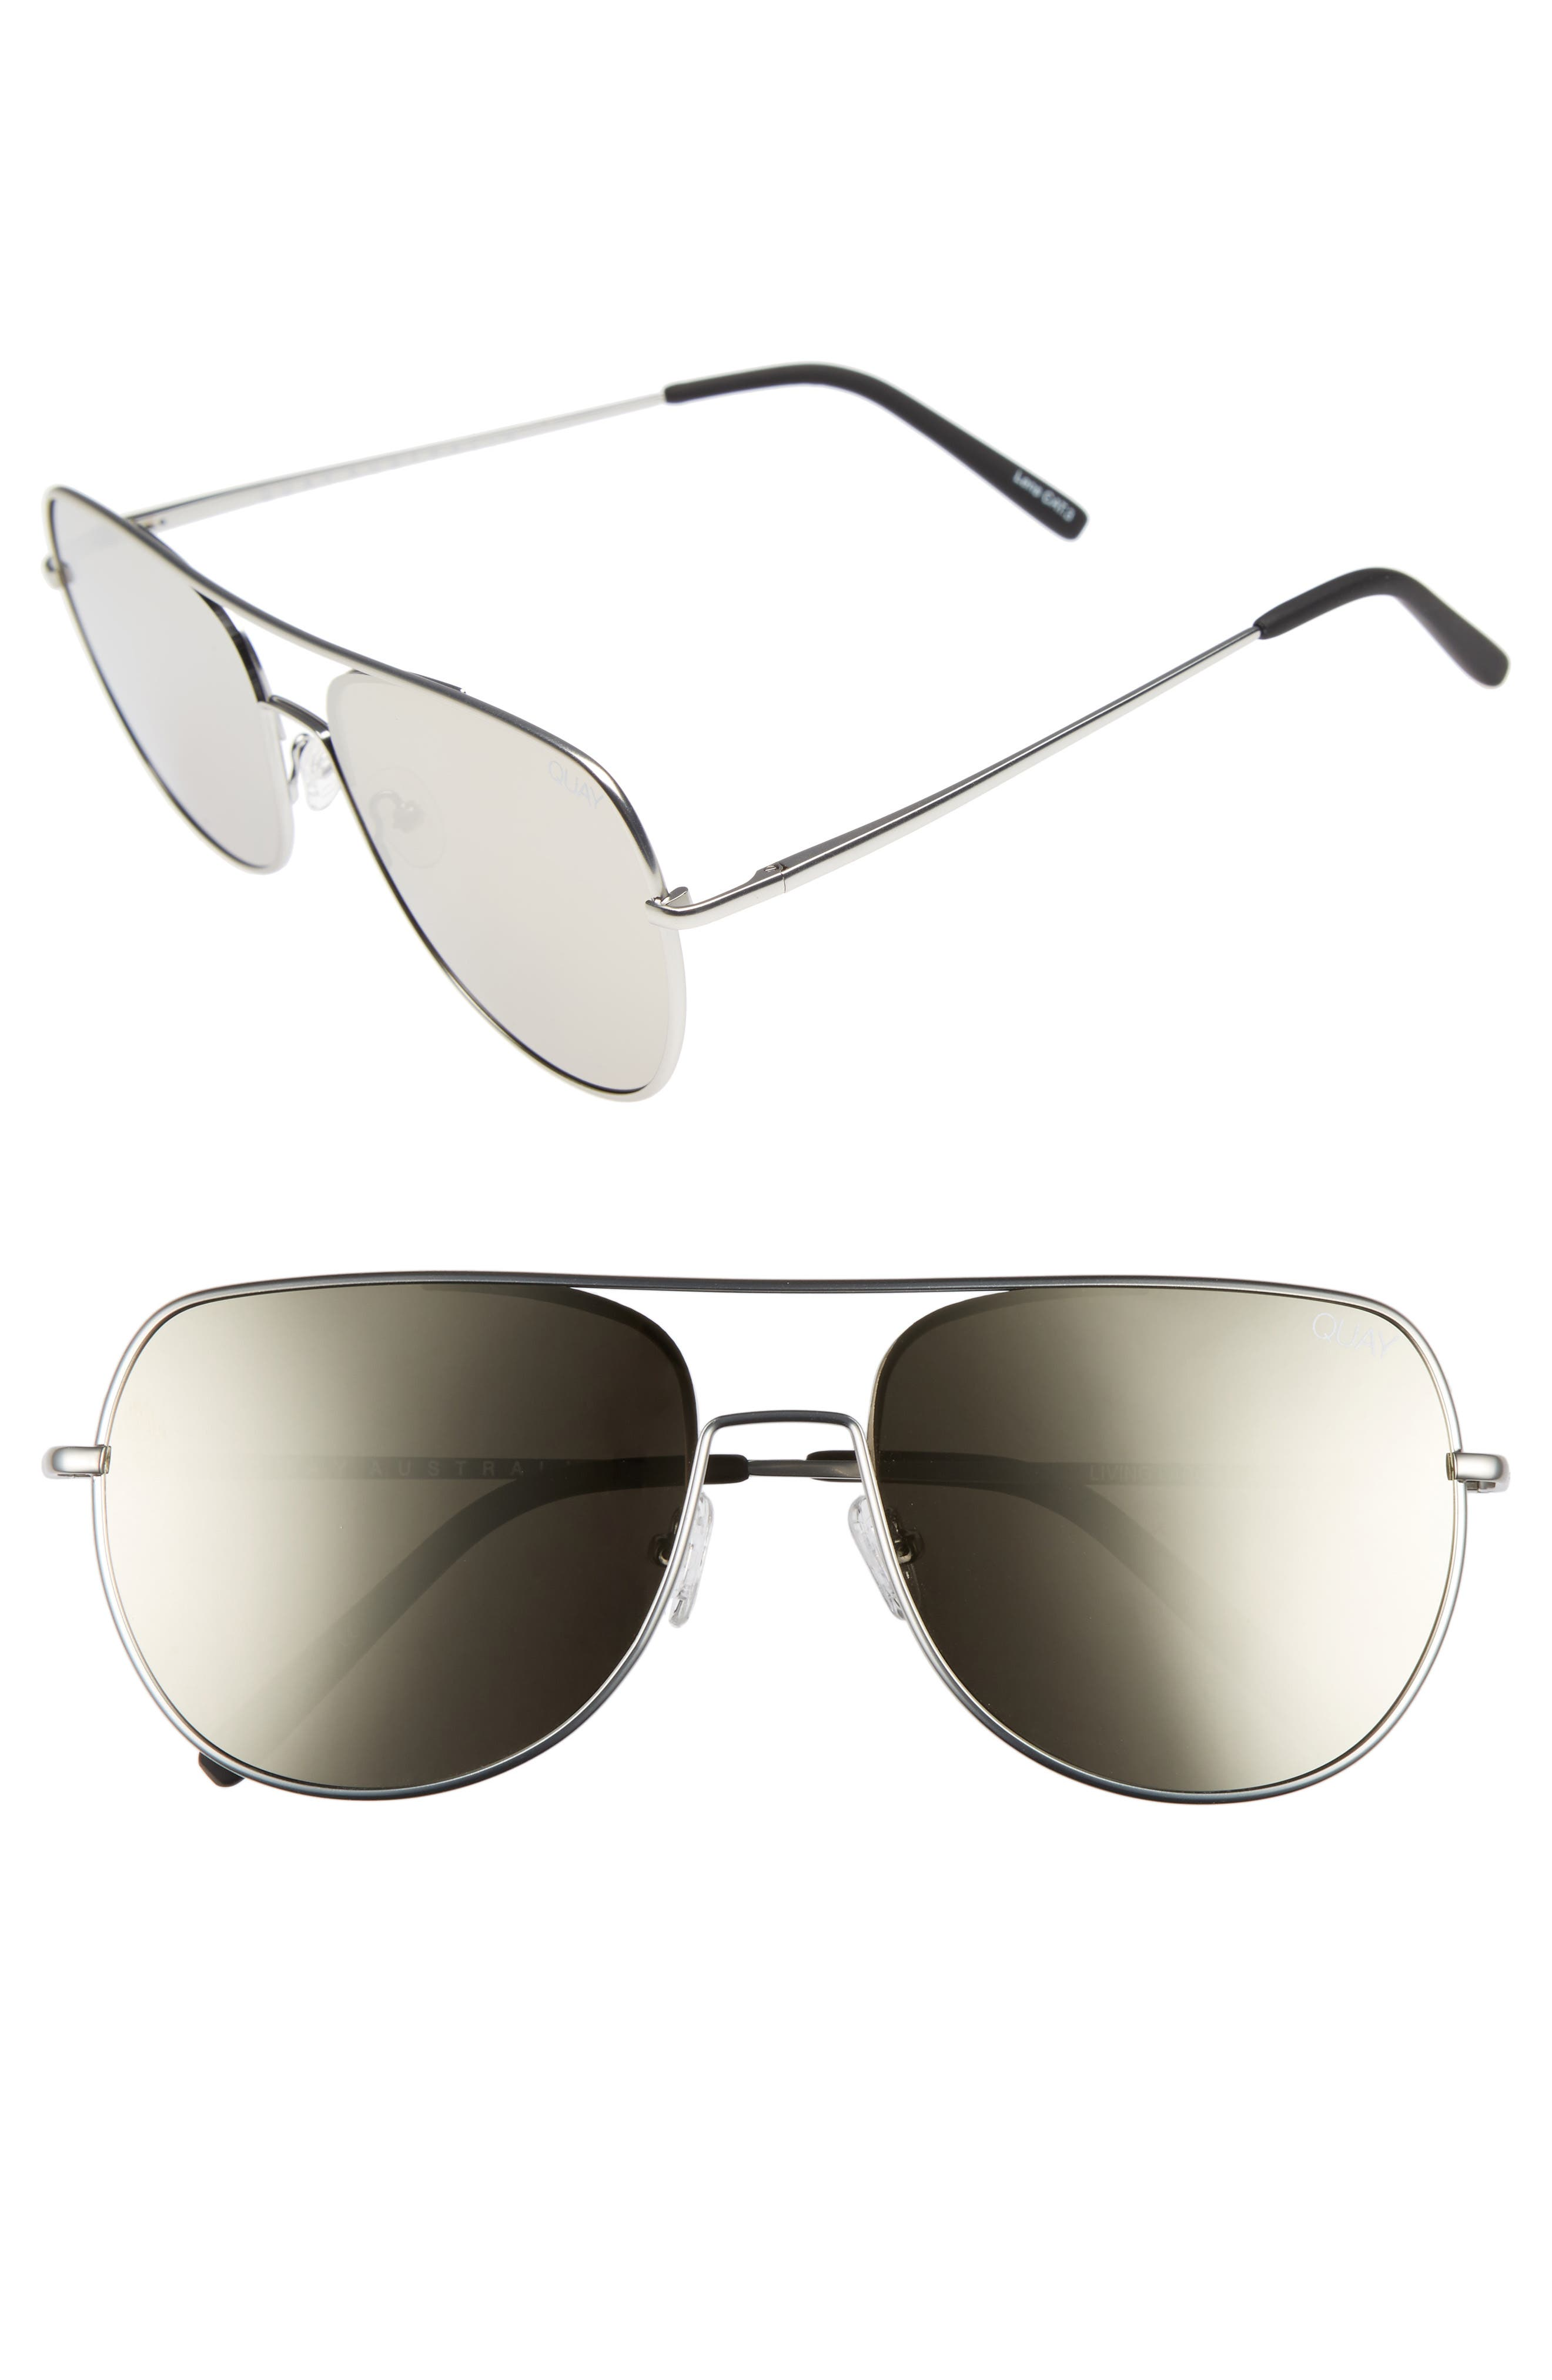 Living Large 61mm Aviator Sunglasses,                         Main,                         color, Silver/ Silver